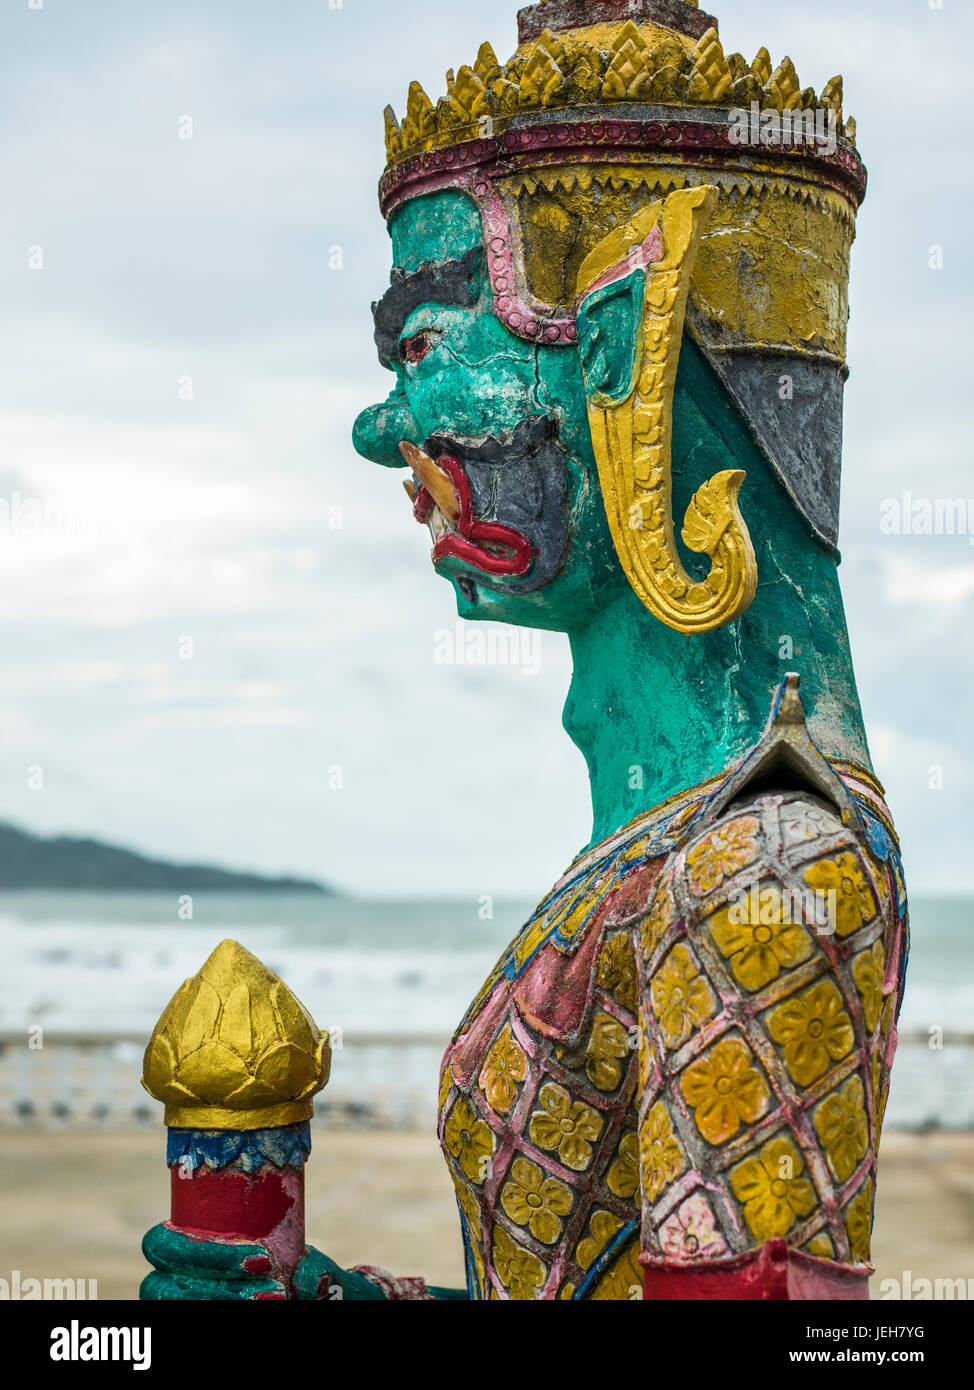 Close-up of a colourful, painted statue and the Gulf of Thailand in the background; Ko Samui, Chang Wat Surat Thani, - Stock Image